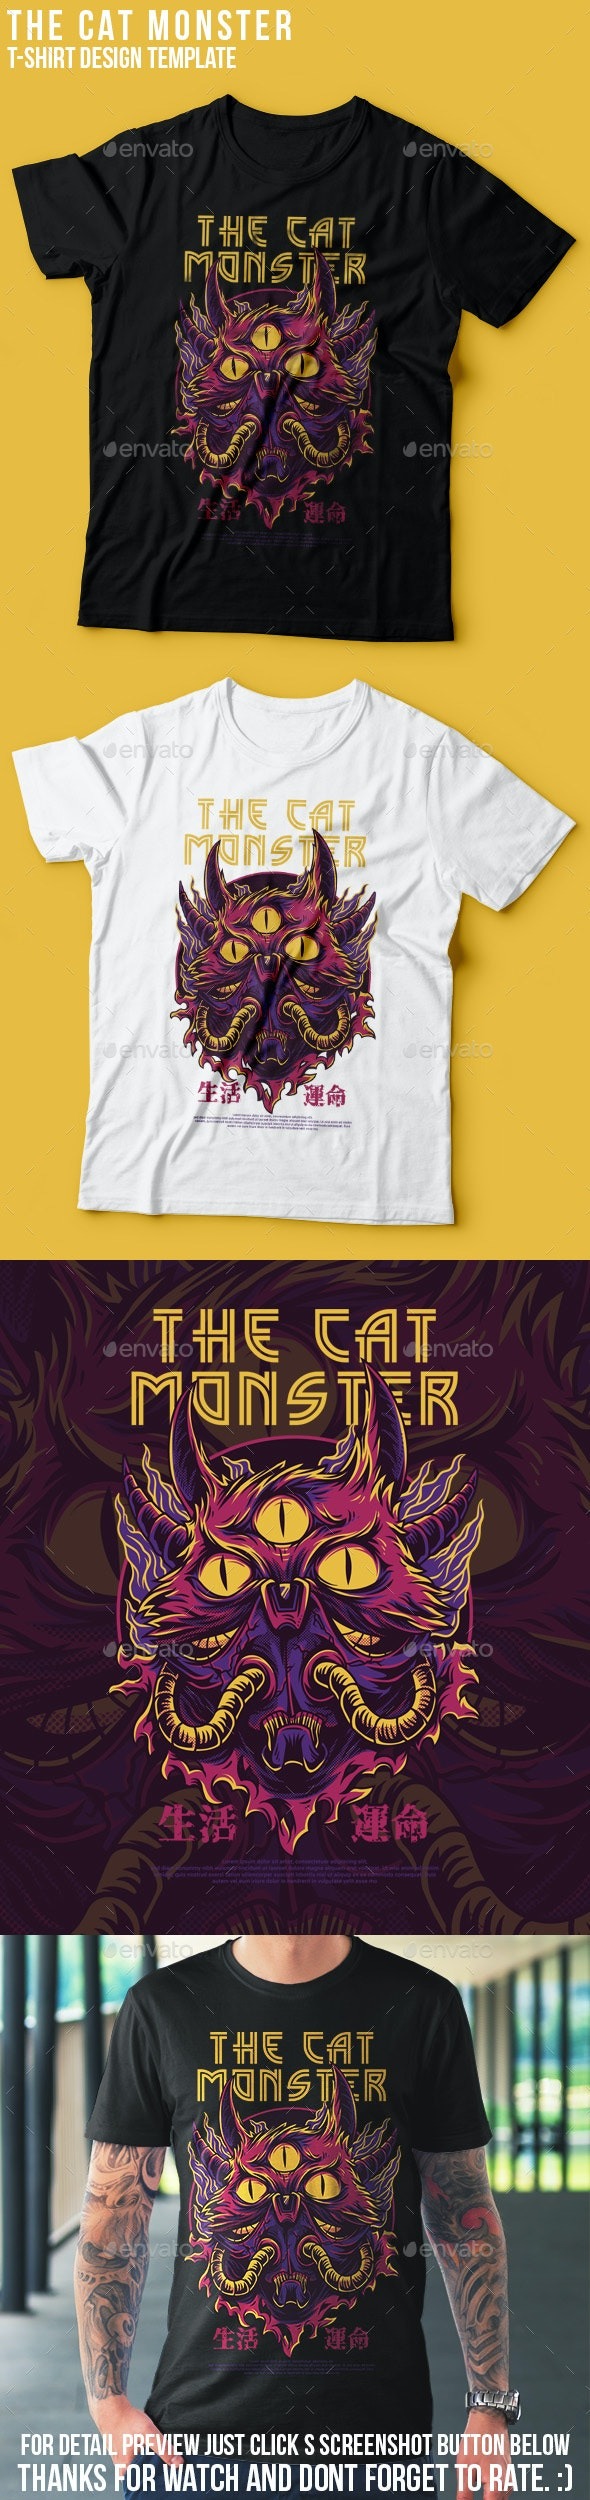 The Cat Monster T-Shirt Design - Events T-Shirts